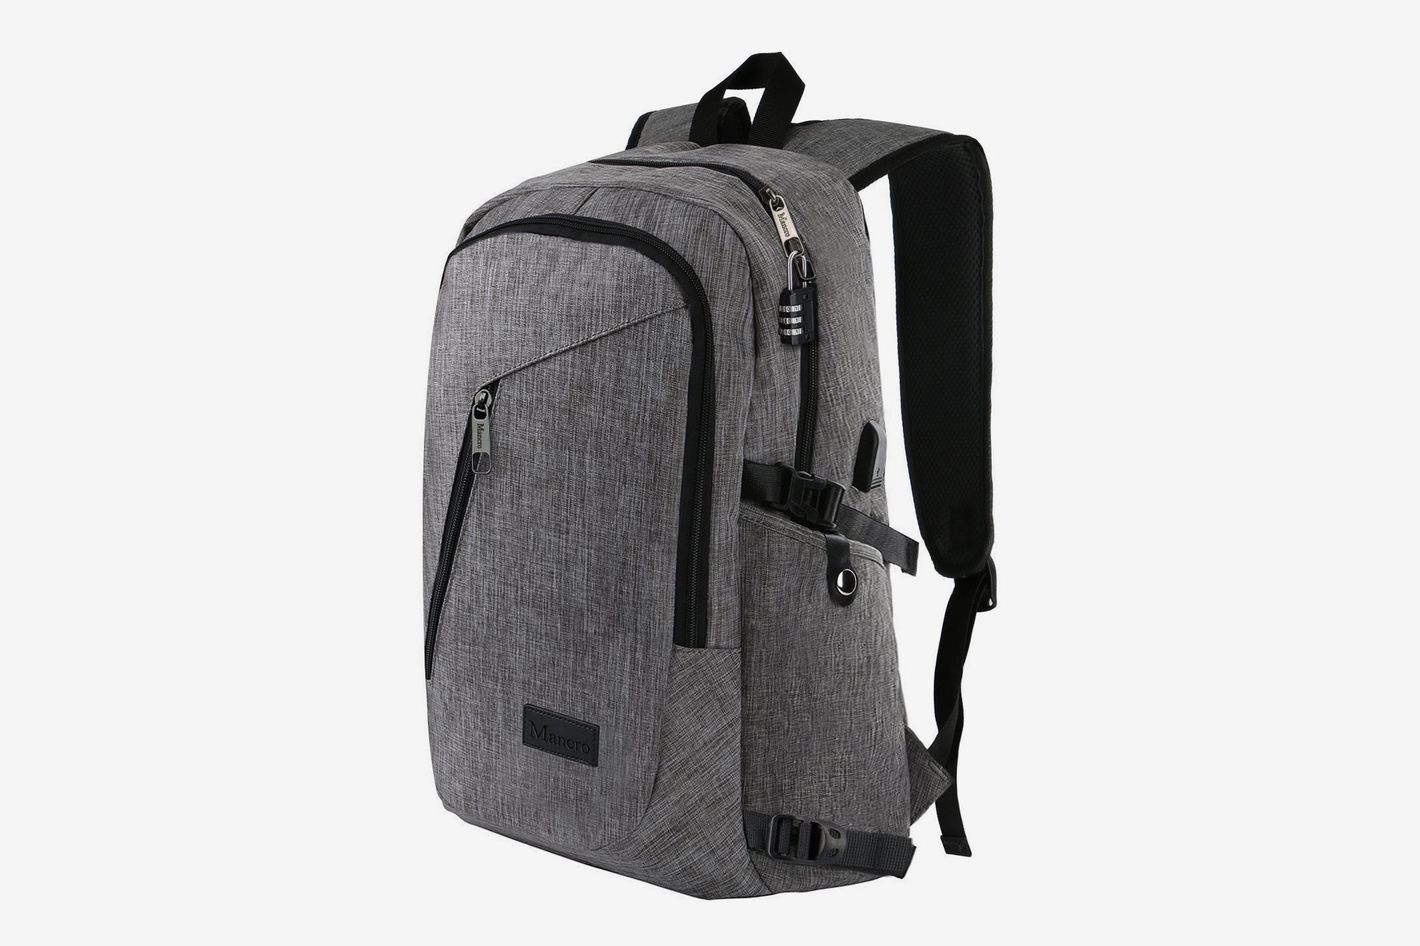 8a416b79d4 Mancro Laptop Backpack at Amazon